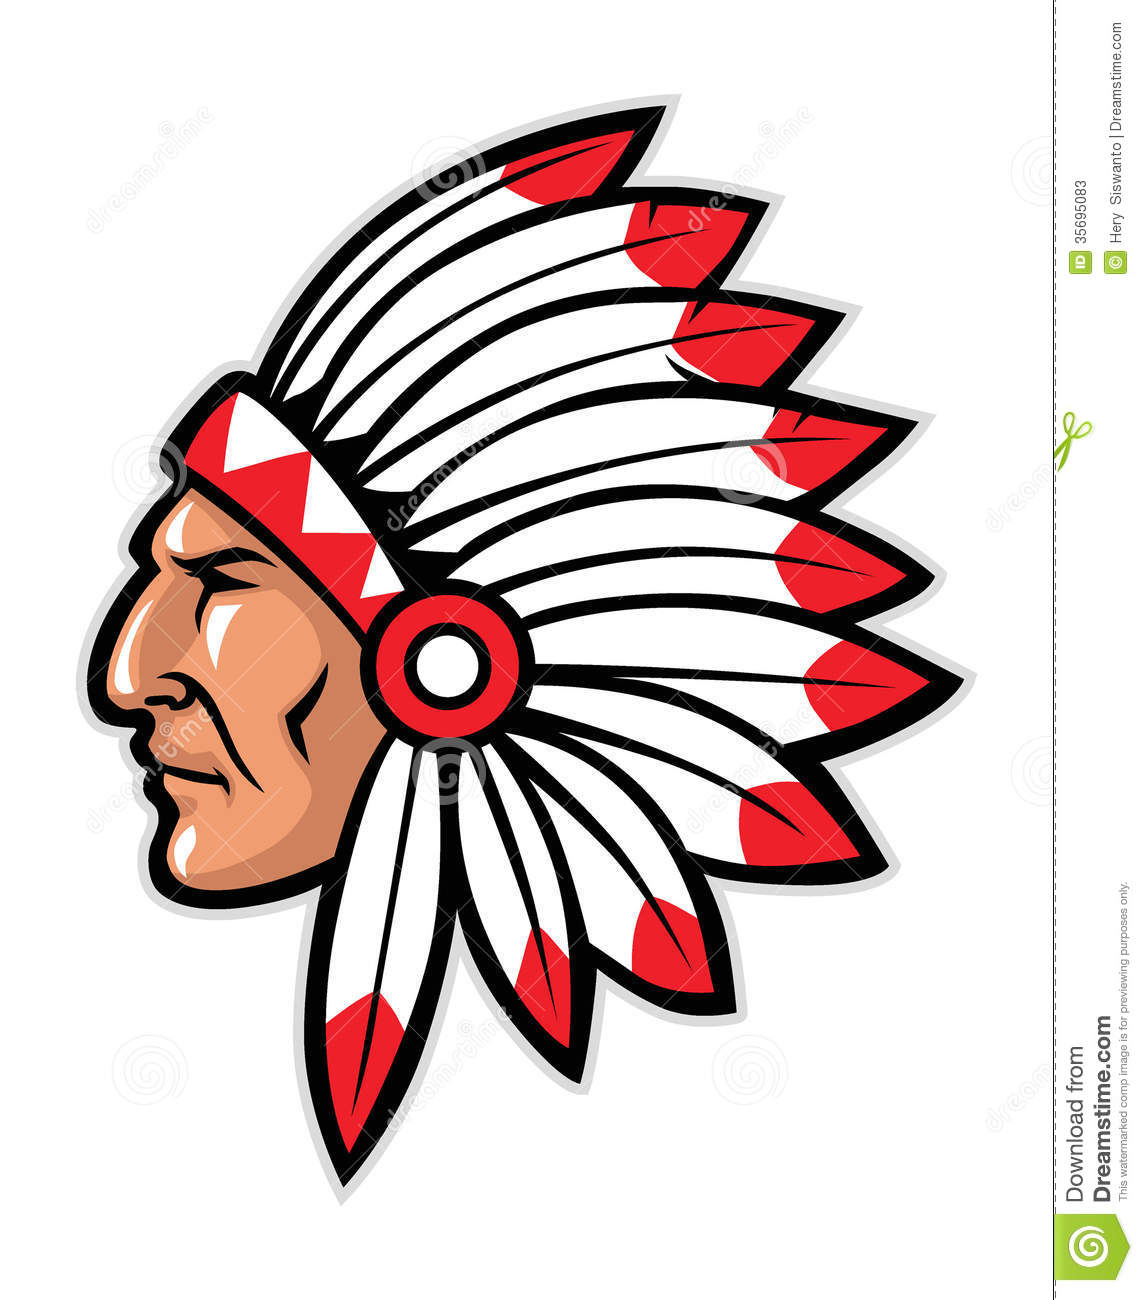 Indian chief head clipart picture freeuse library 7+ Indian Headdress Clipart | ClipartLook picture freeuse library